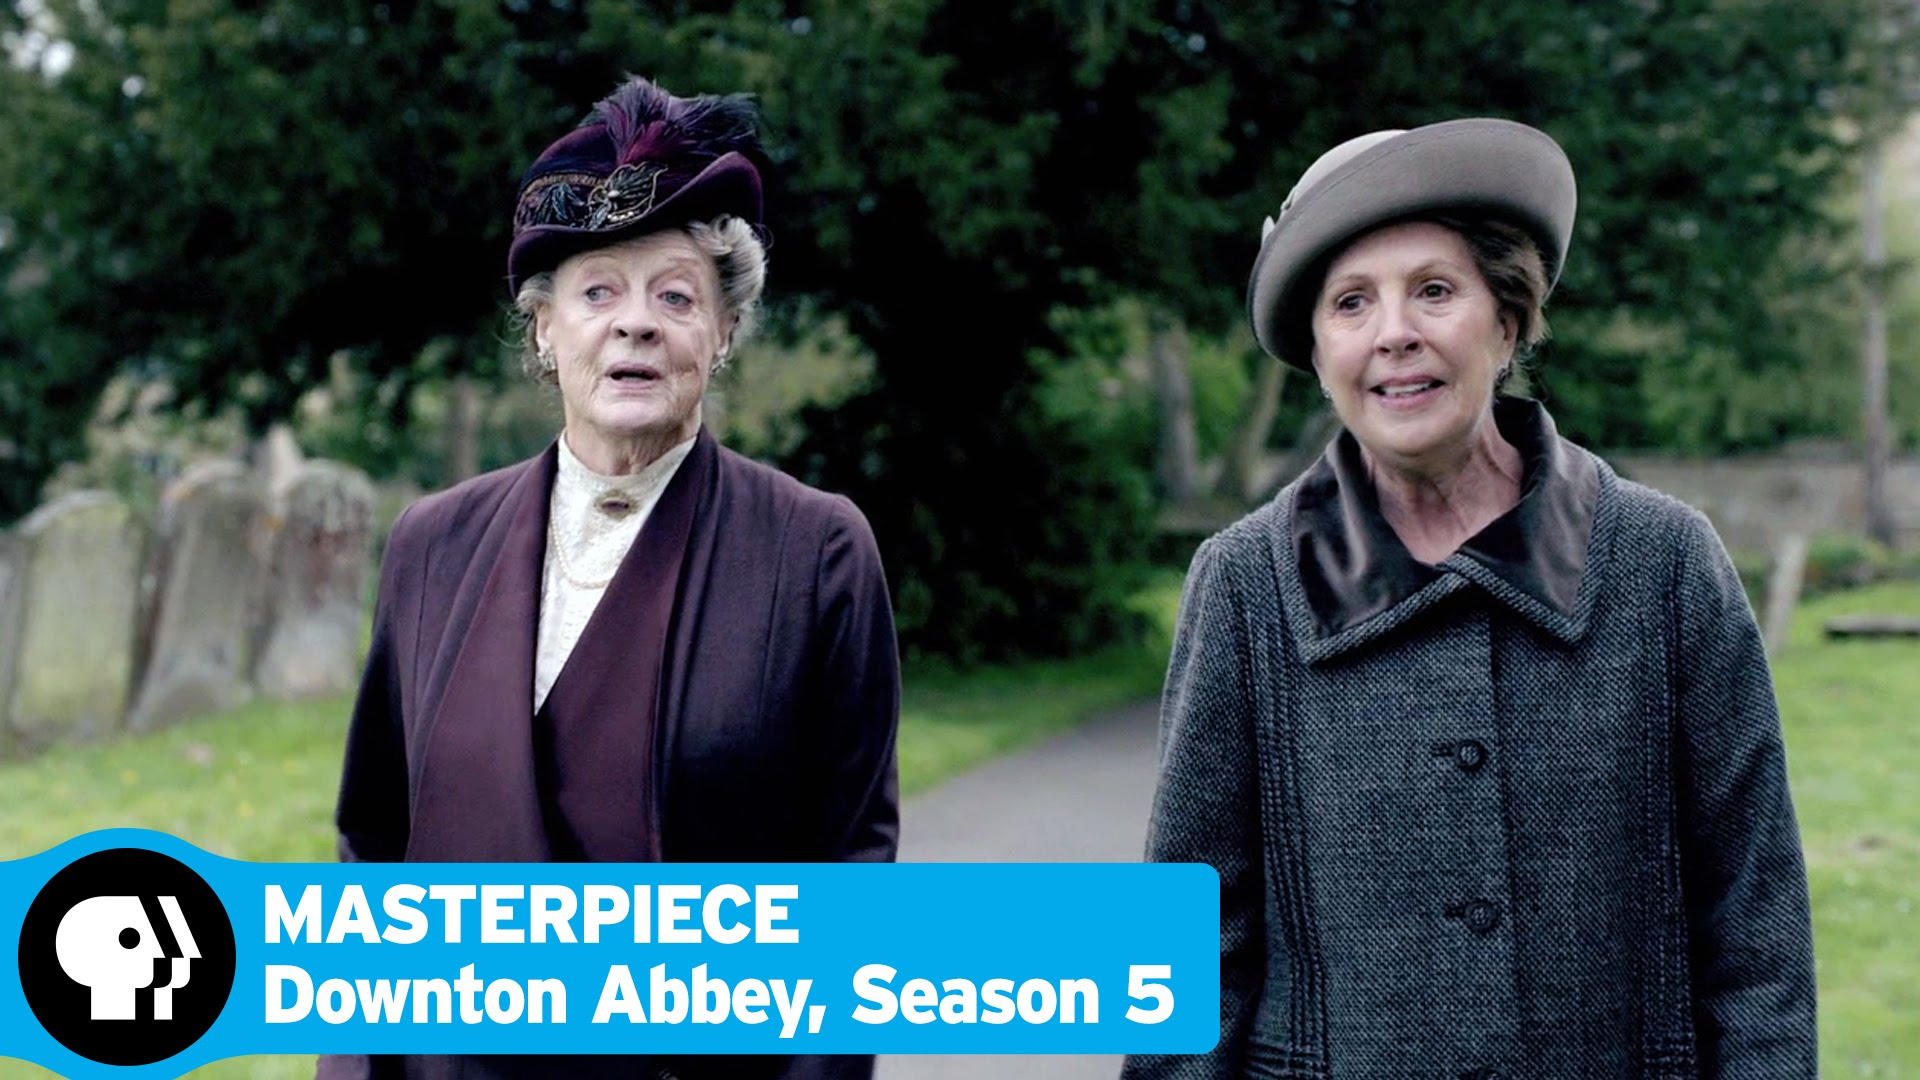 Downton Abbey, Season 5, PBS